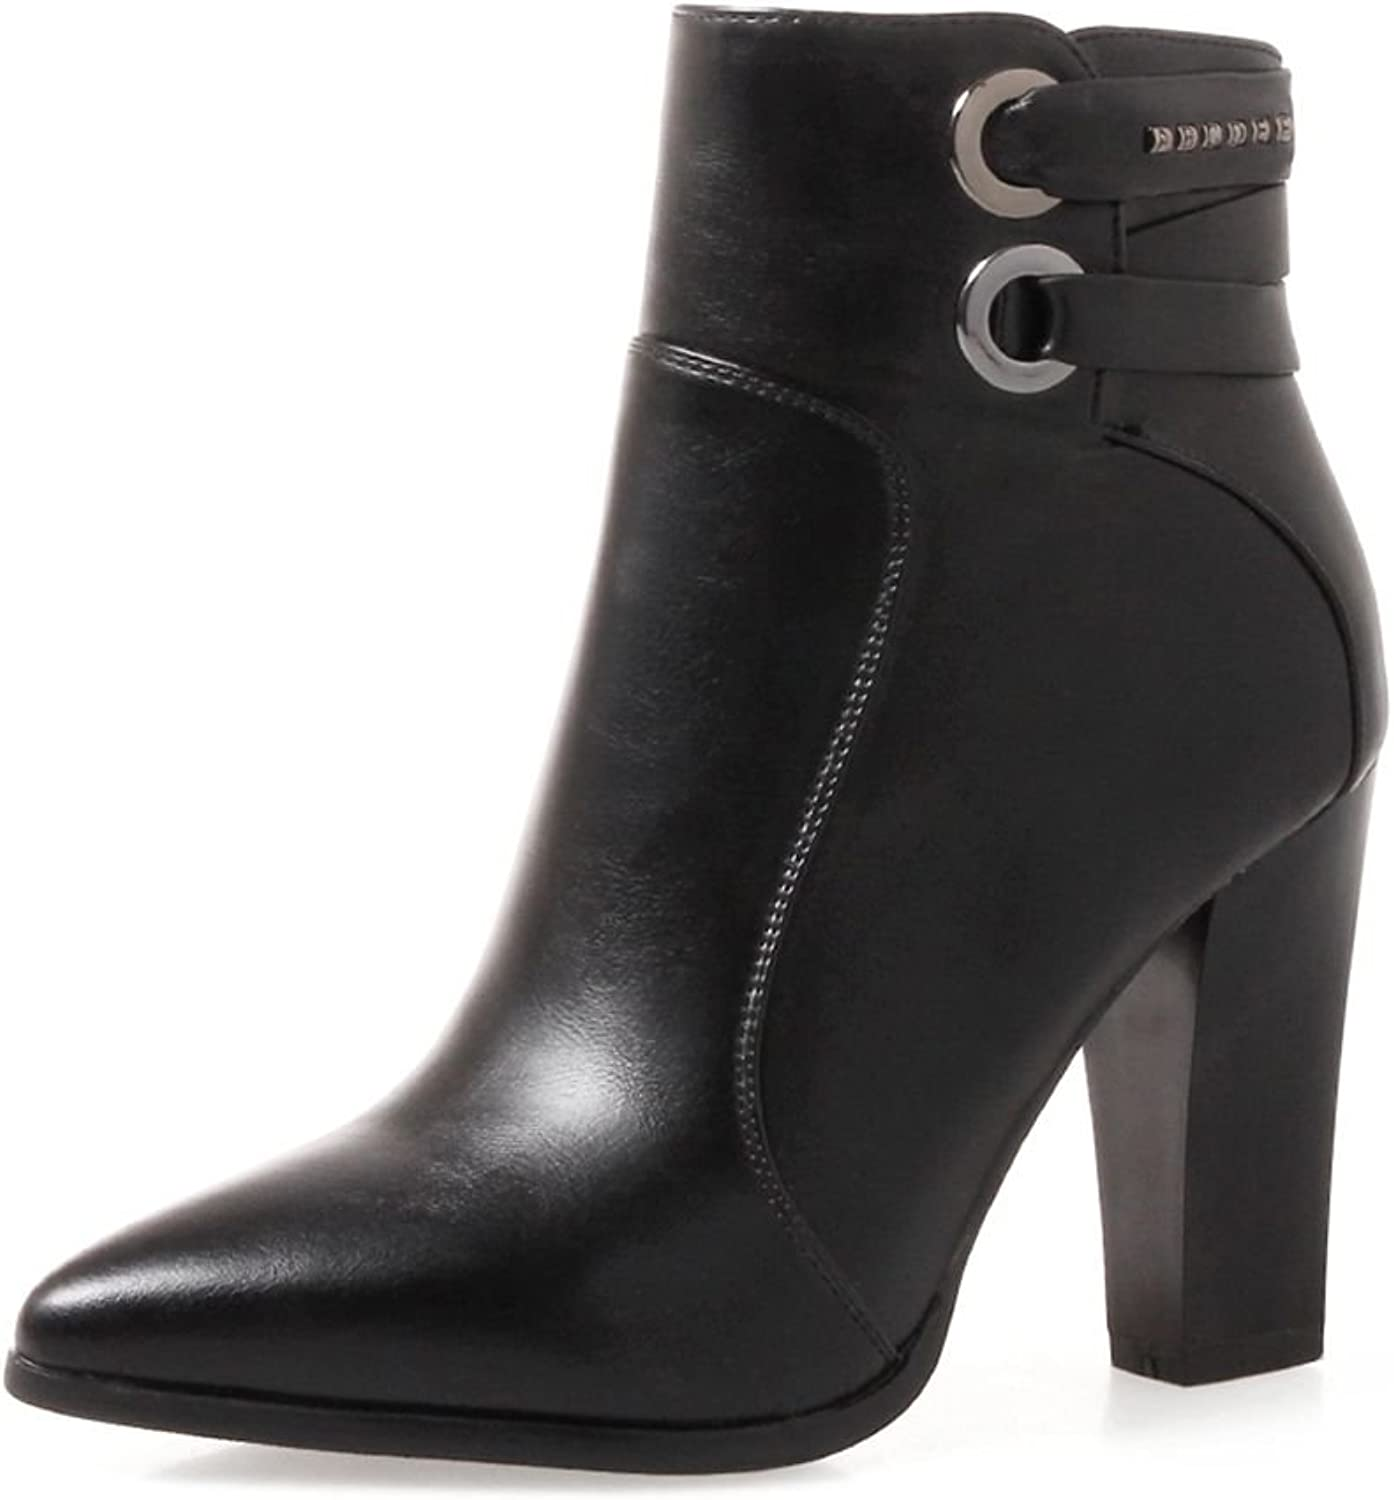 SaraIris Ankle Boots with Pointed-Toe Zipper Ankle Strap Chunky Heesl for Women